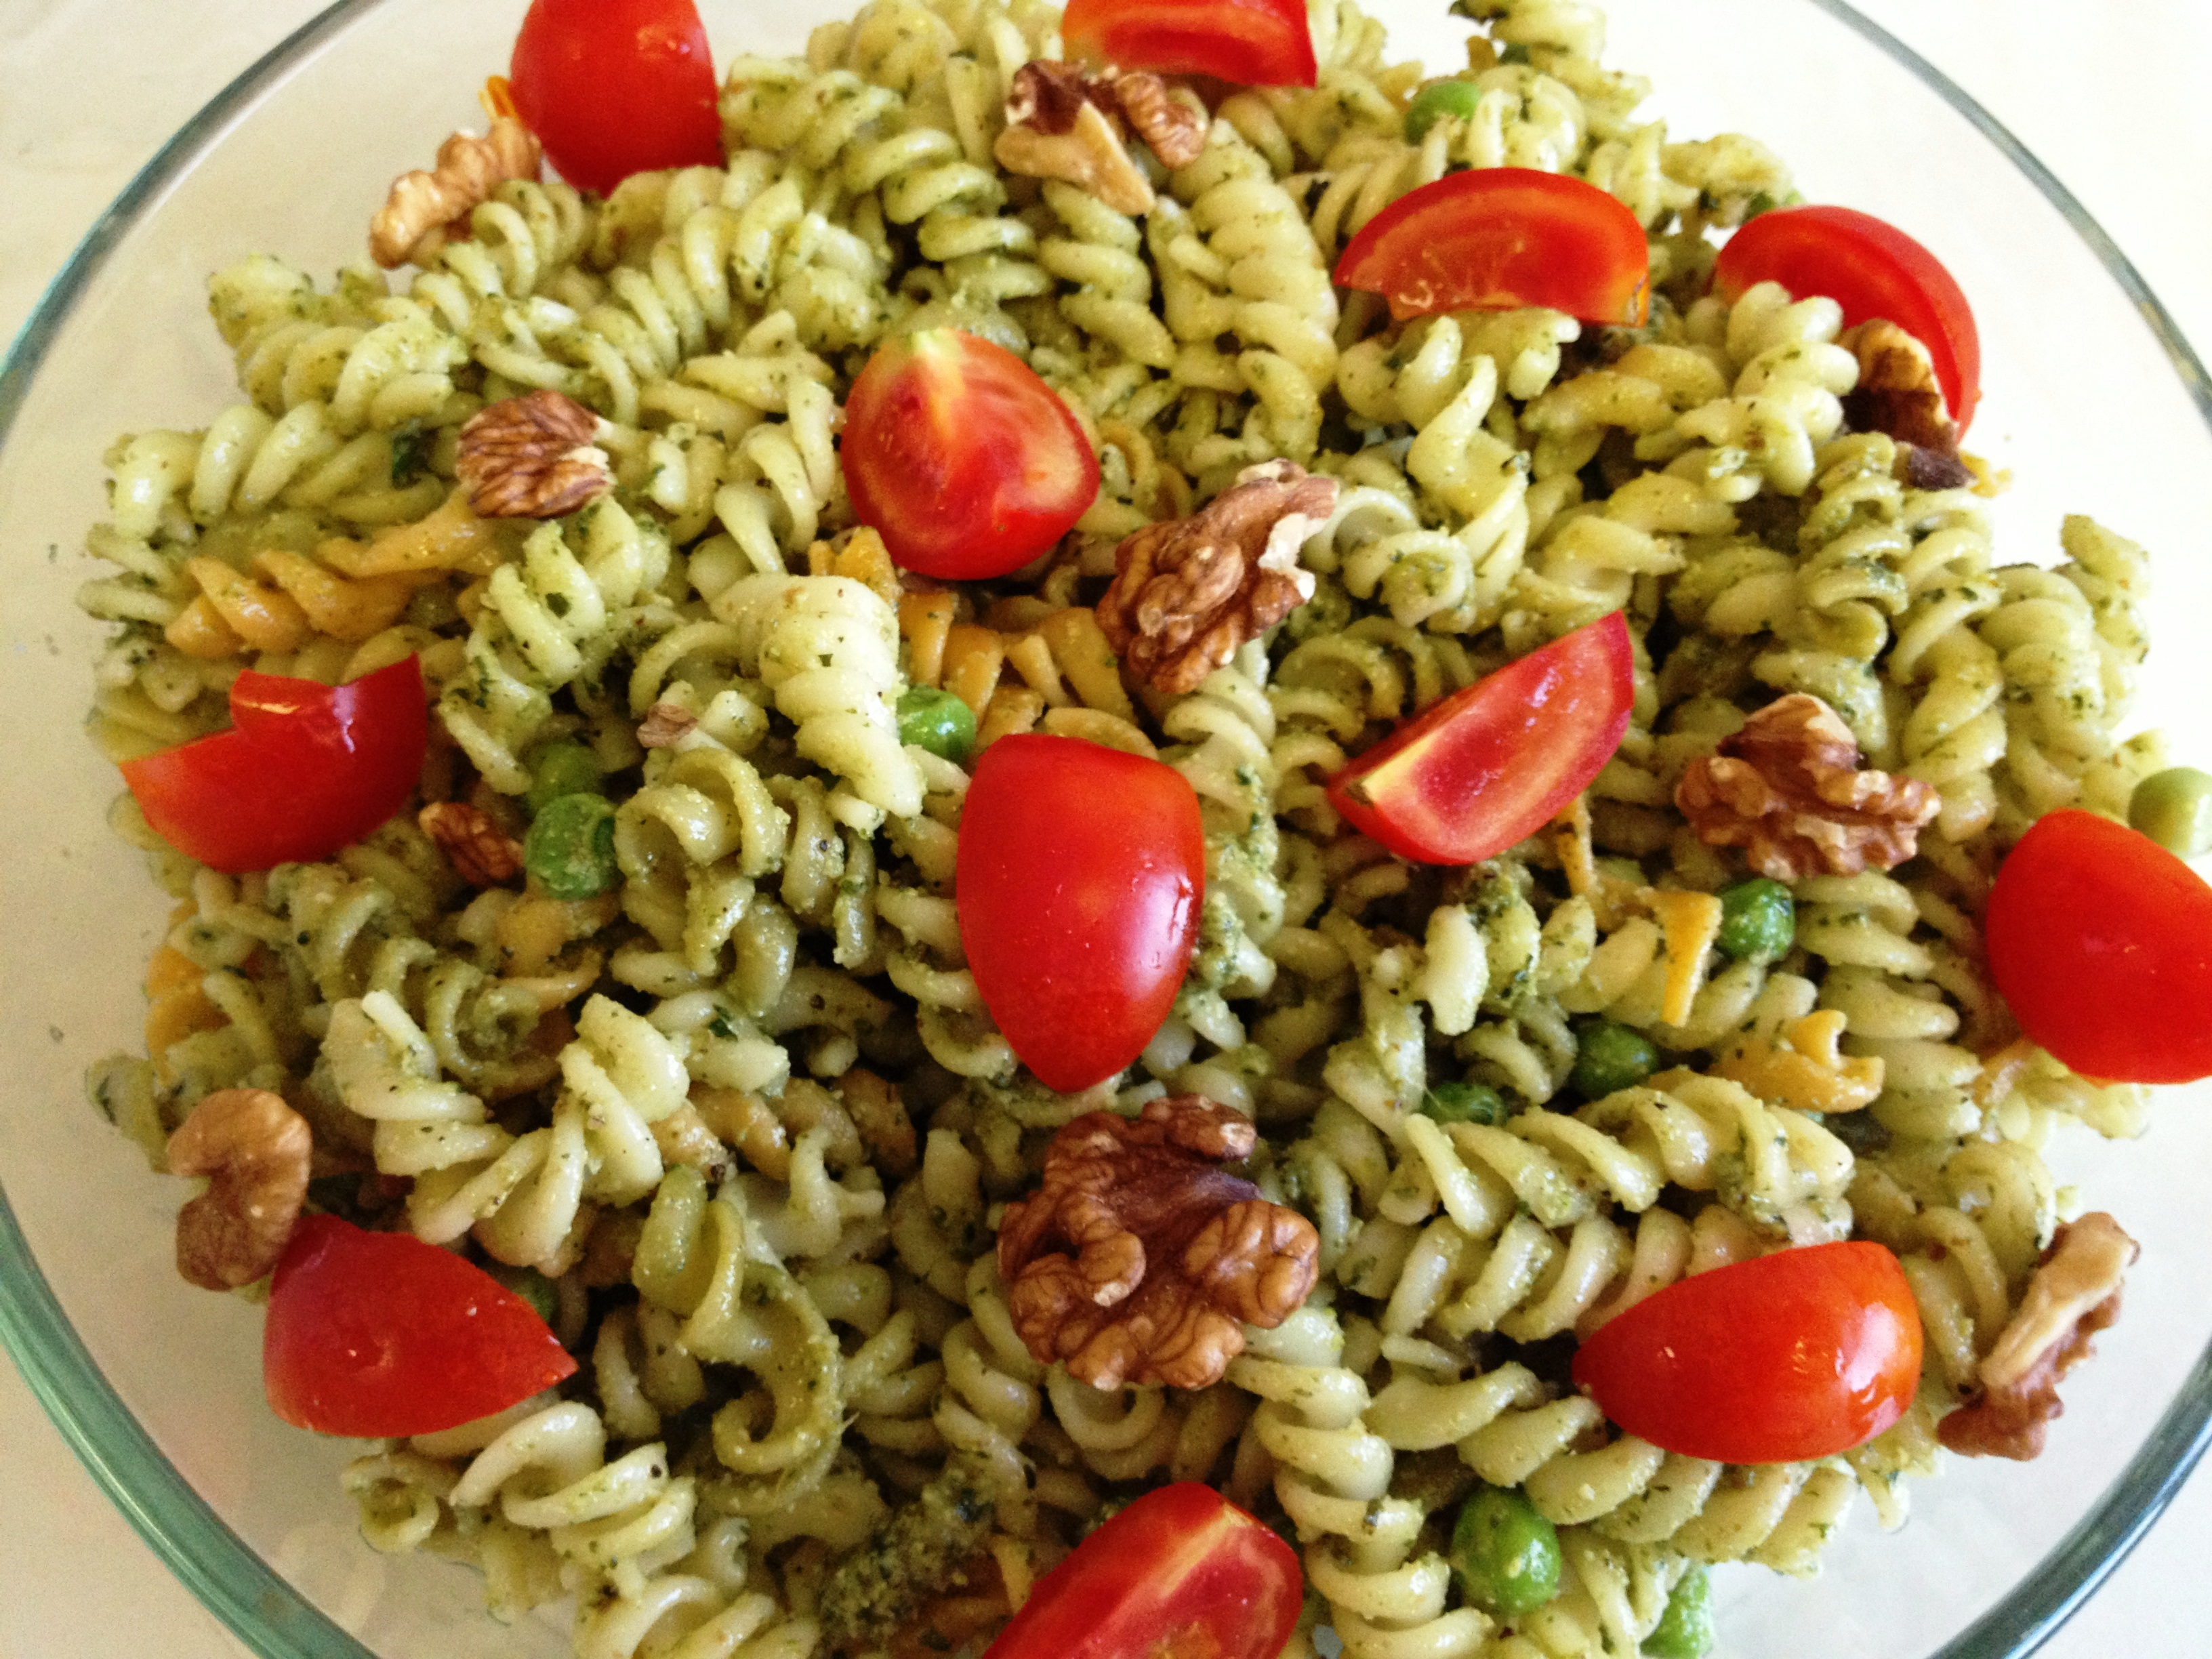 pesto with pasta chicken pesto pasta broccoli pesto pasta creamy pesto ...